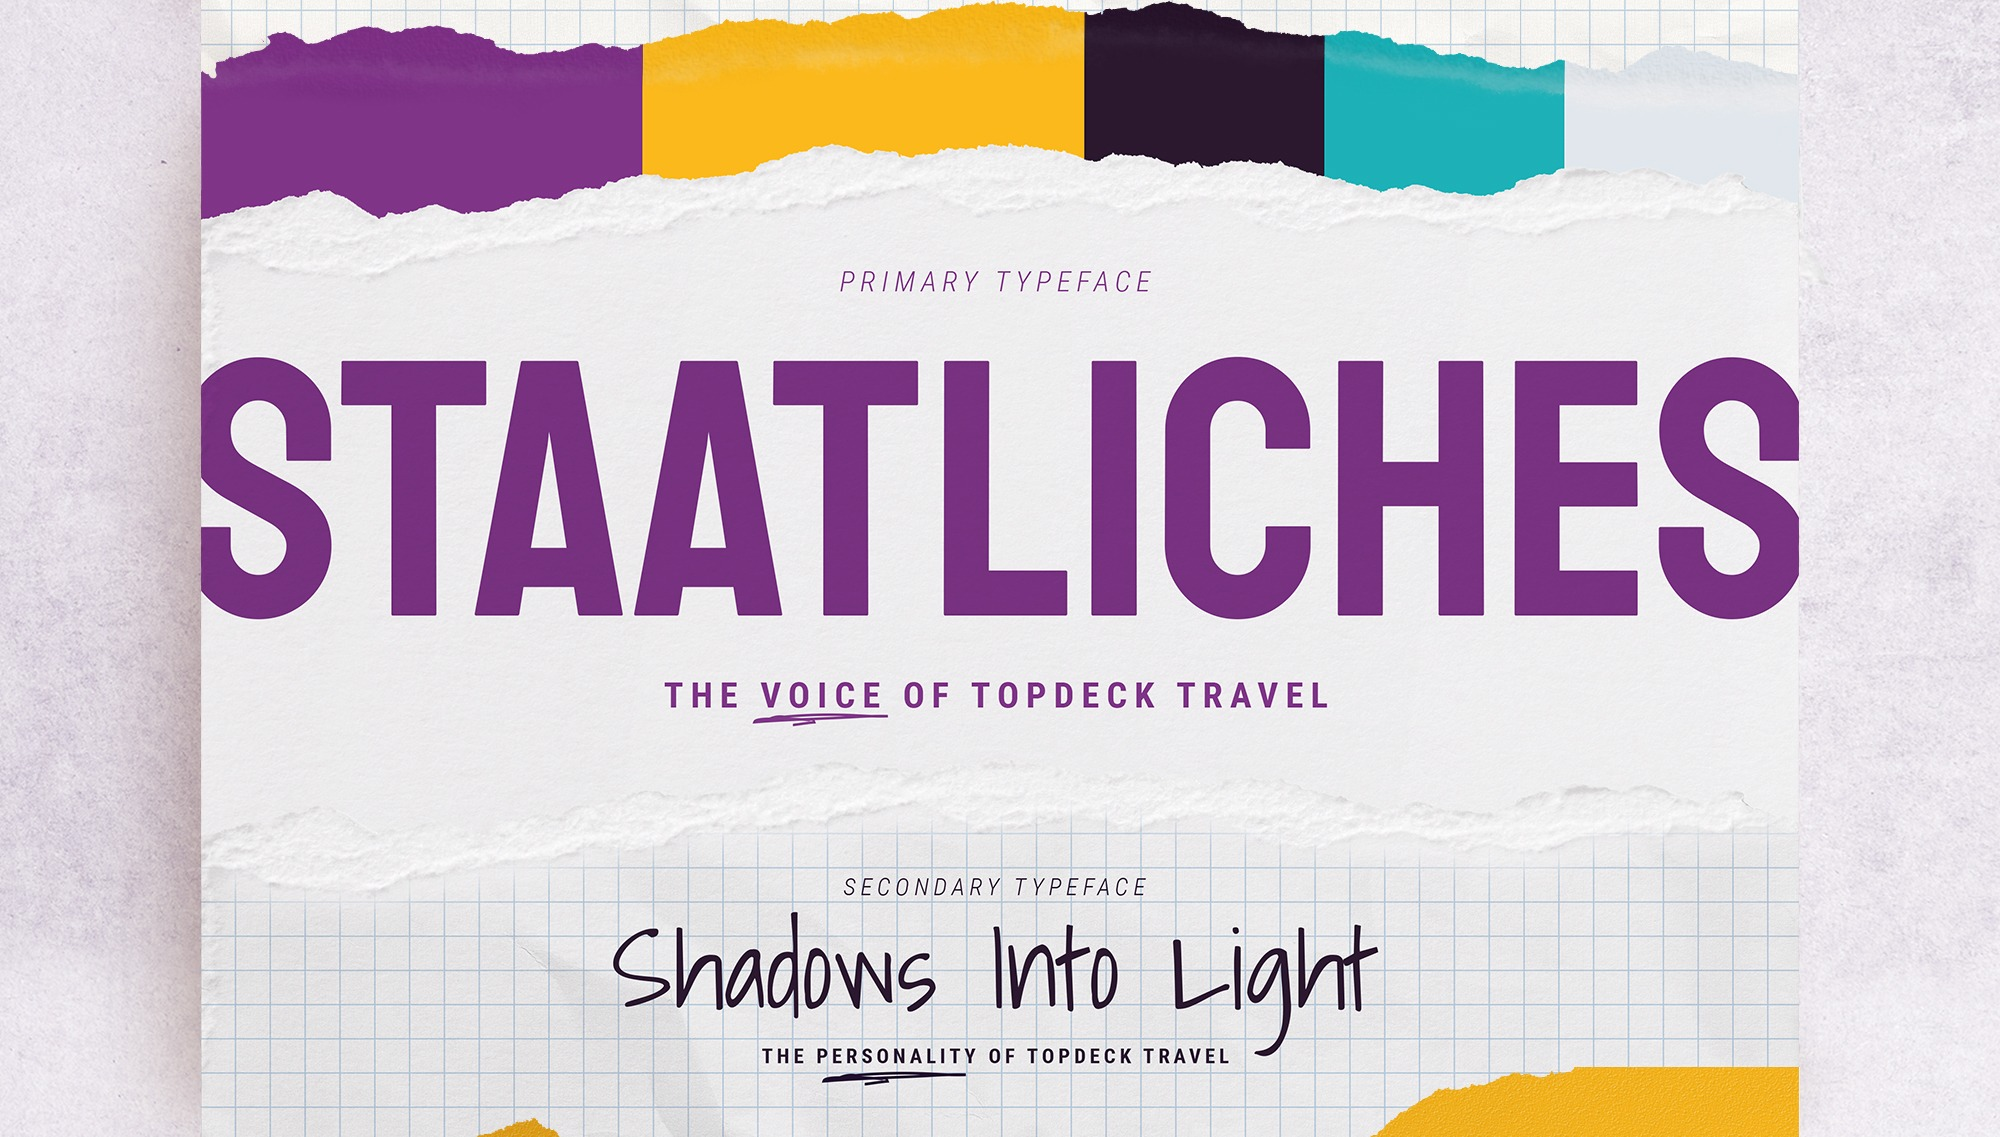 New branding colours and typography for Topdeck Travel